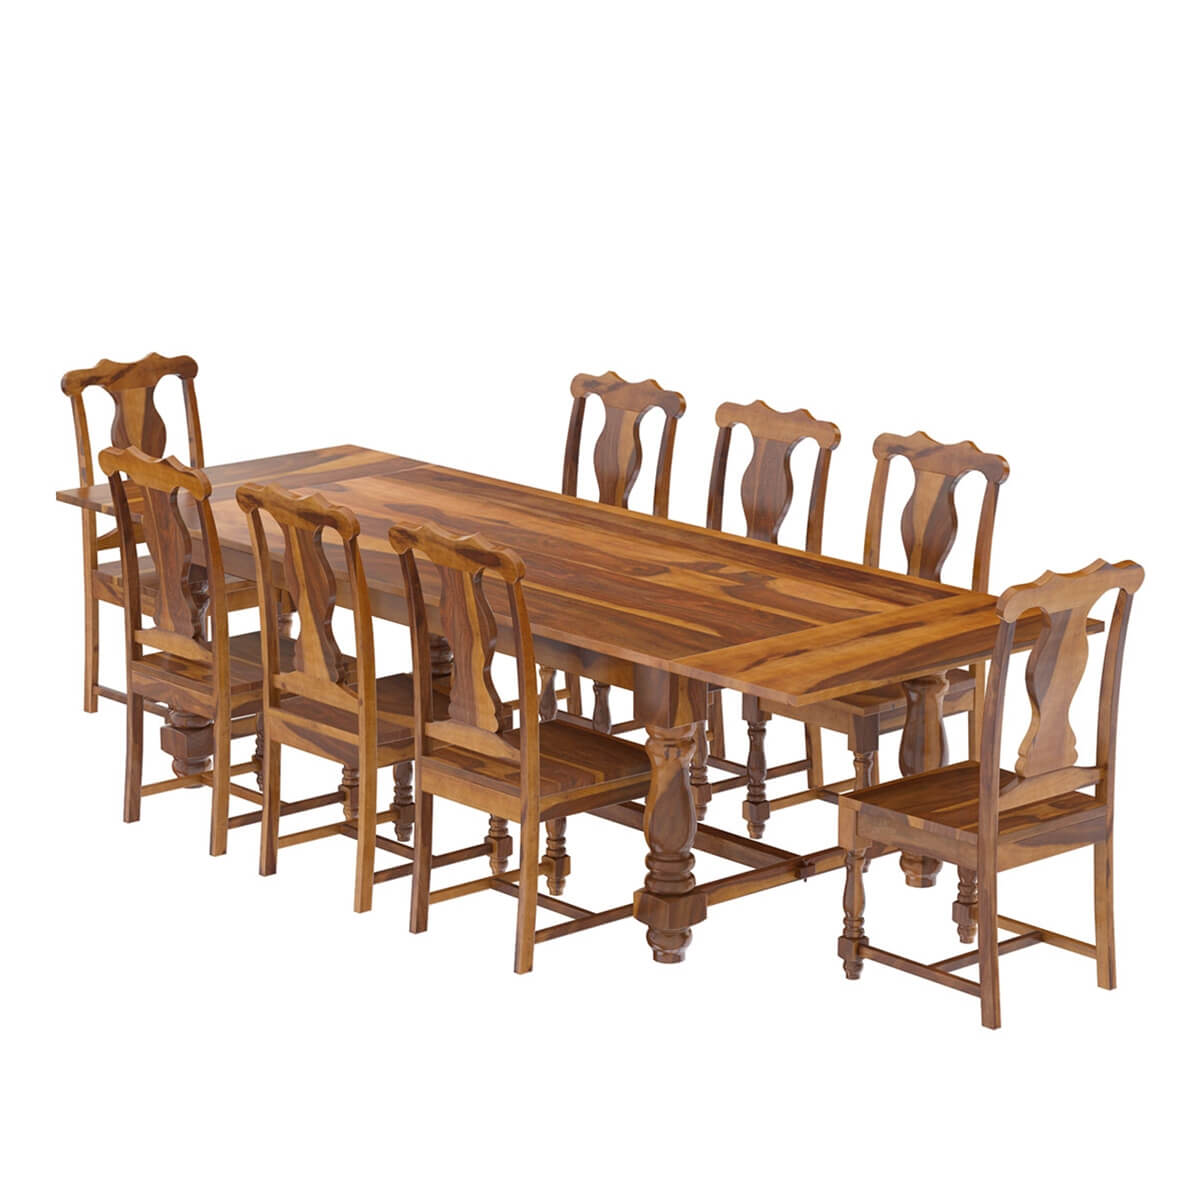 Rustic solid wood dining table chair set furniture w for Solid wood furniture